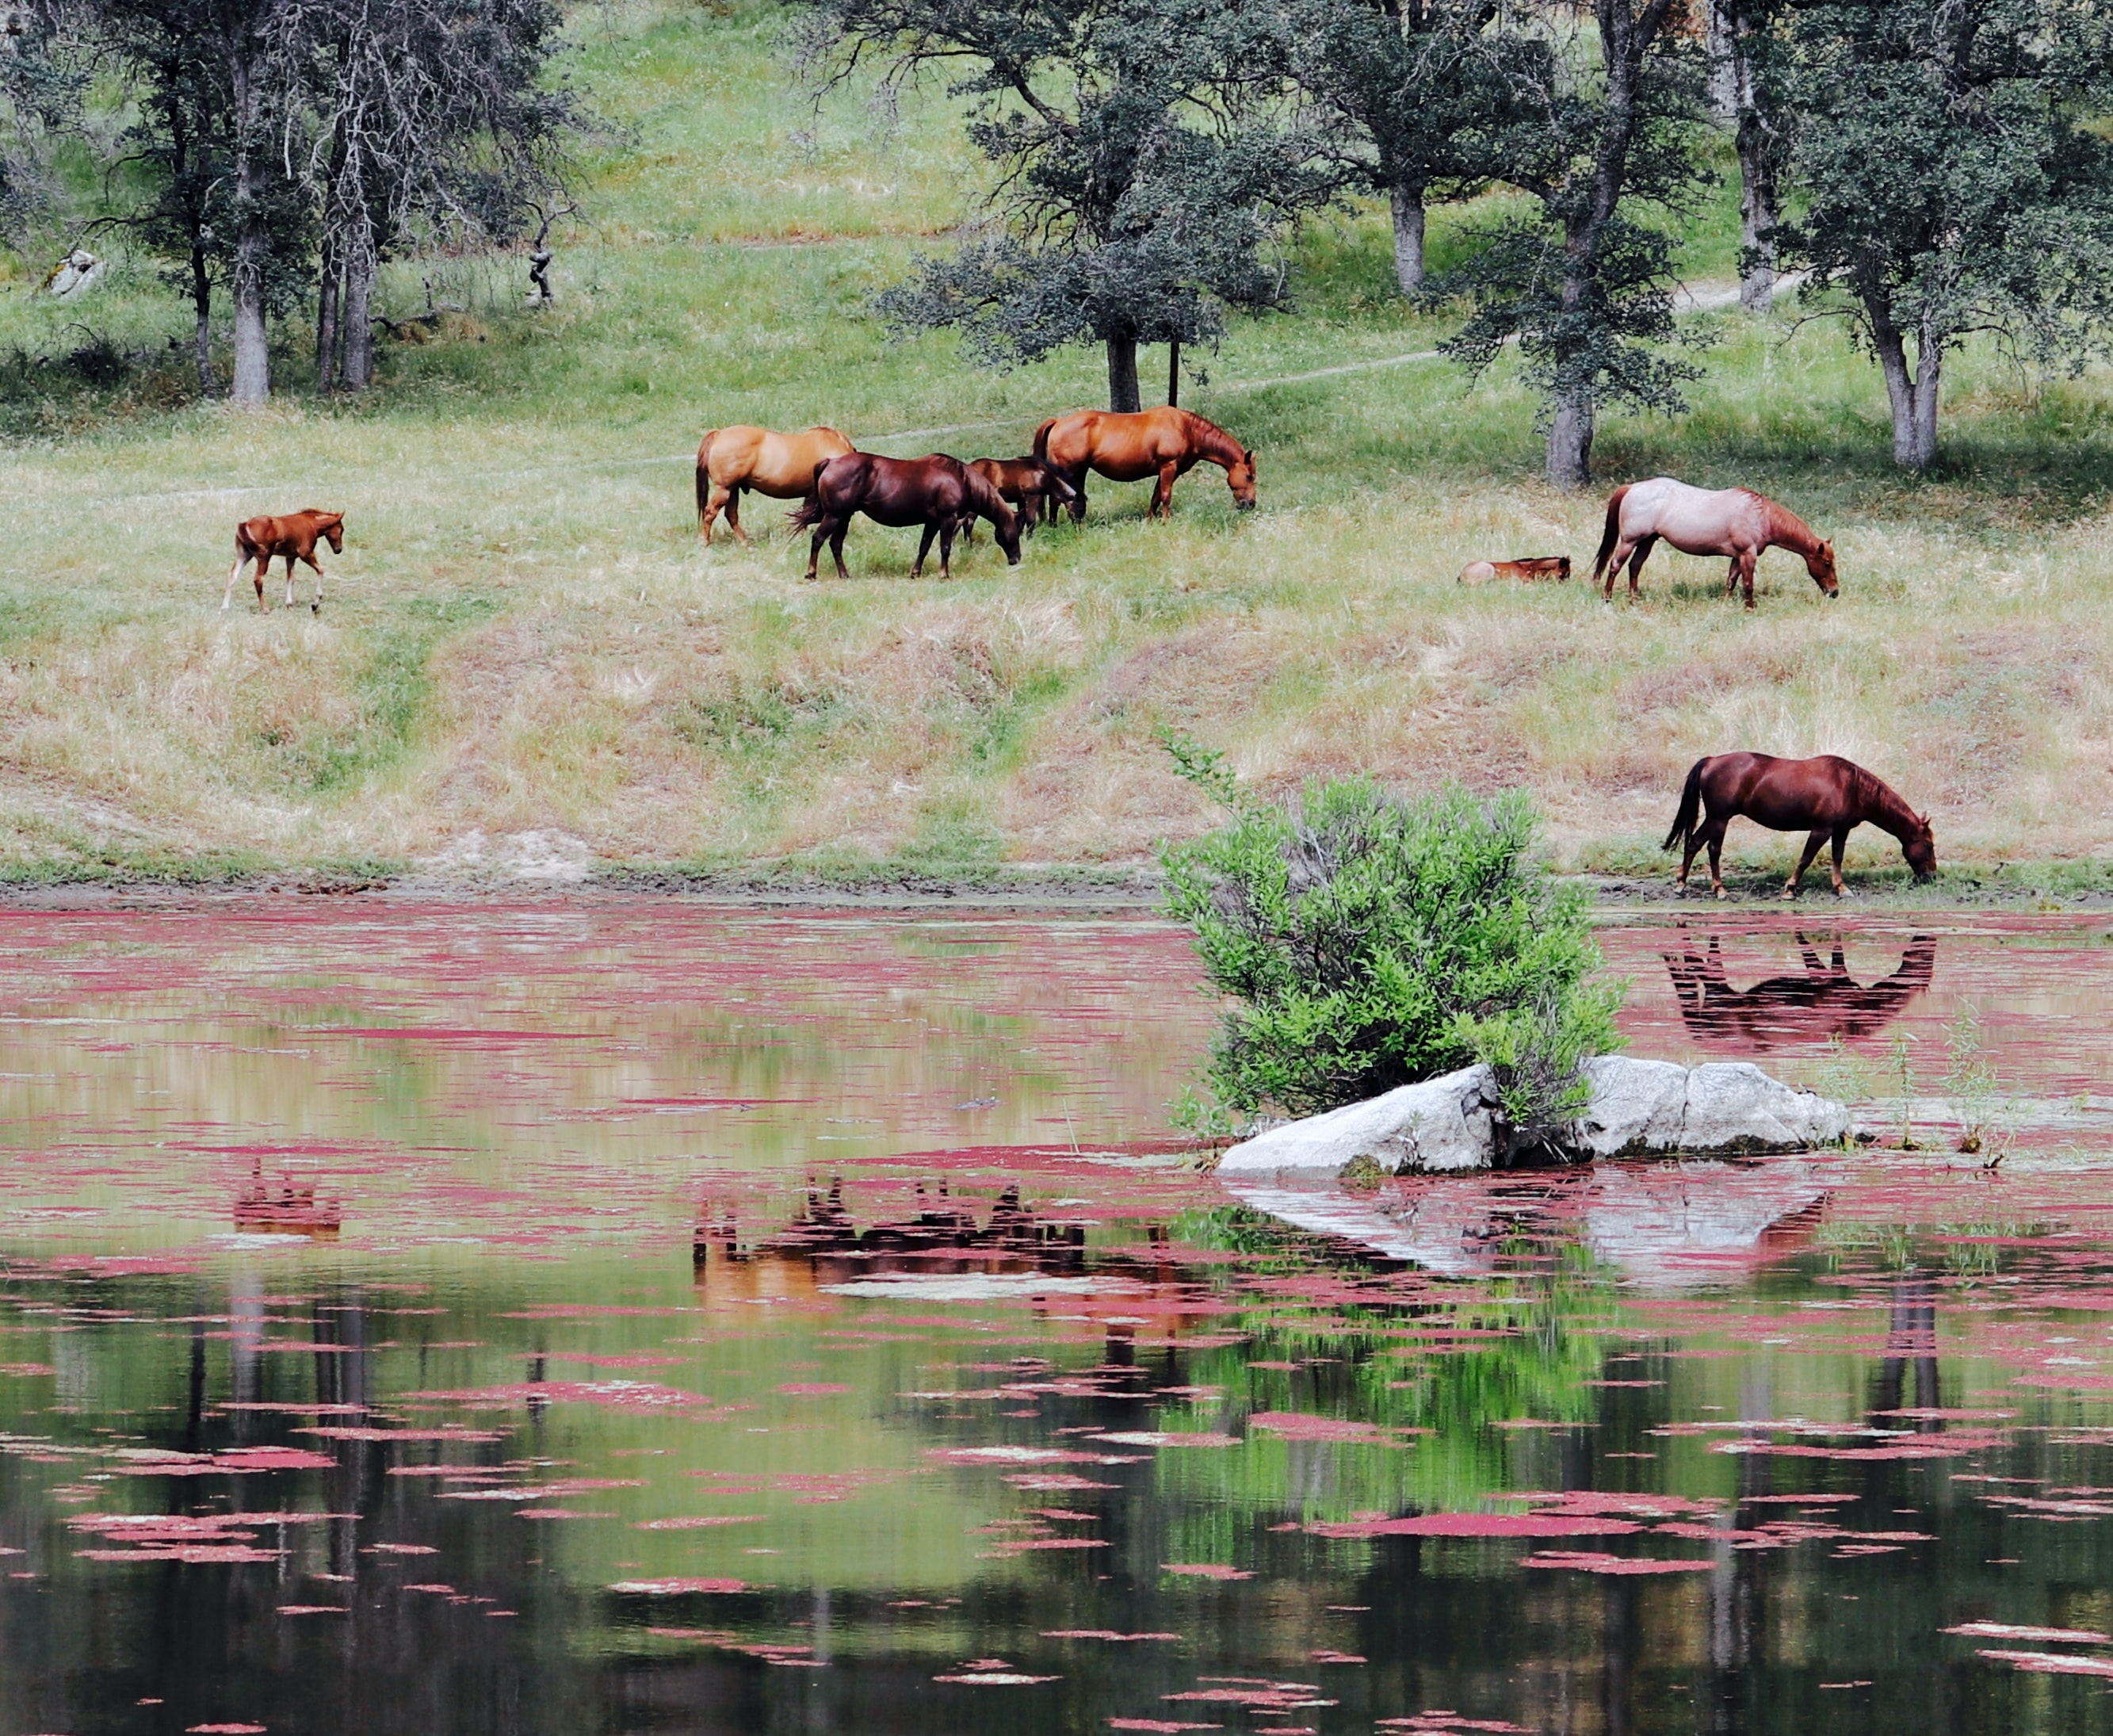 A group of foals and adult horses grazing on the shores of a lake